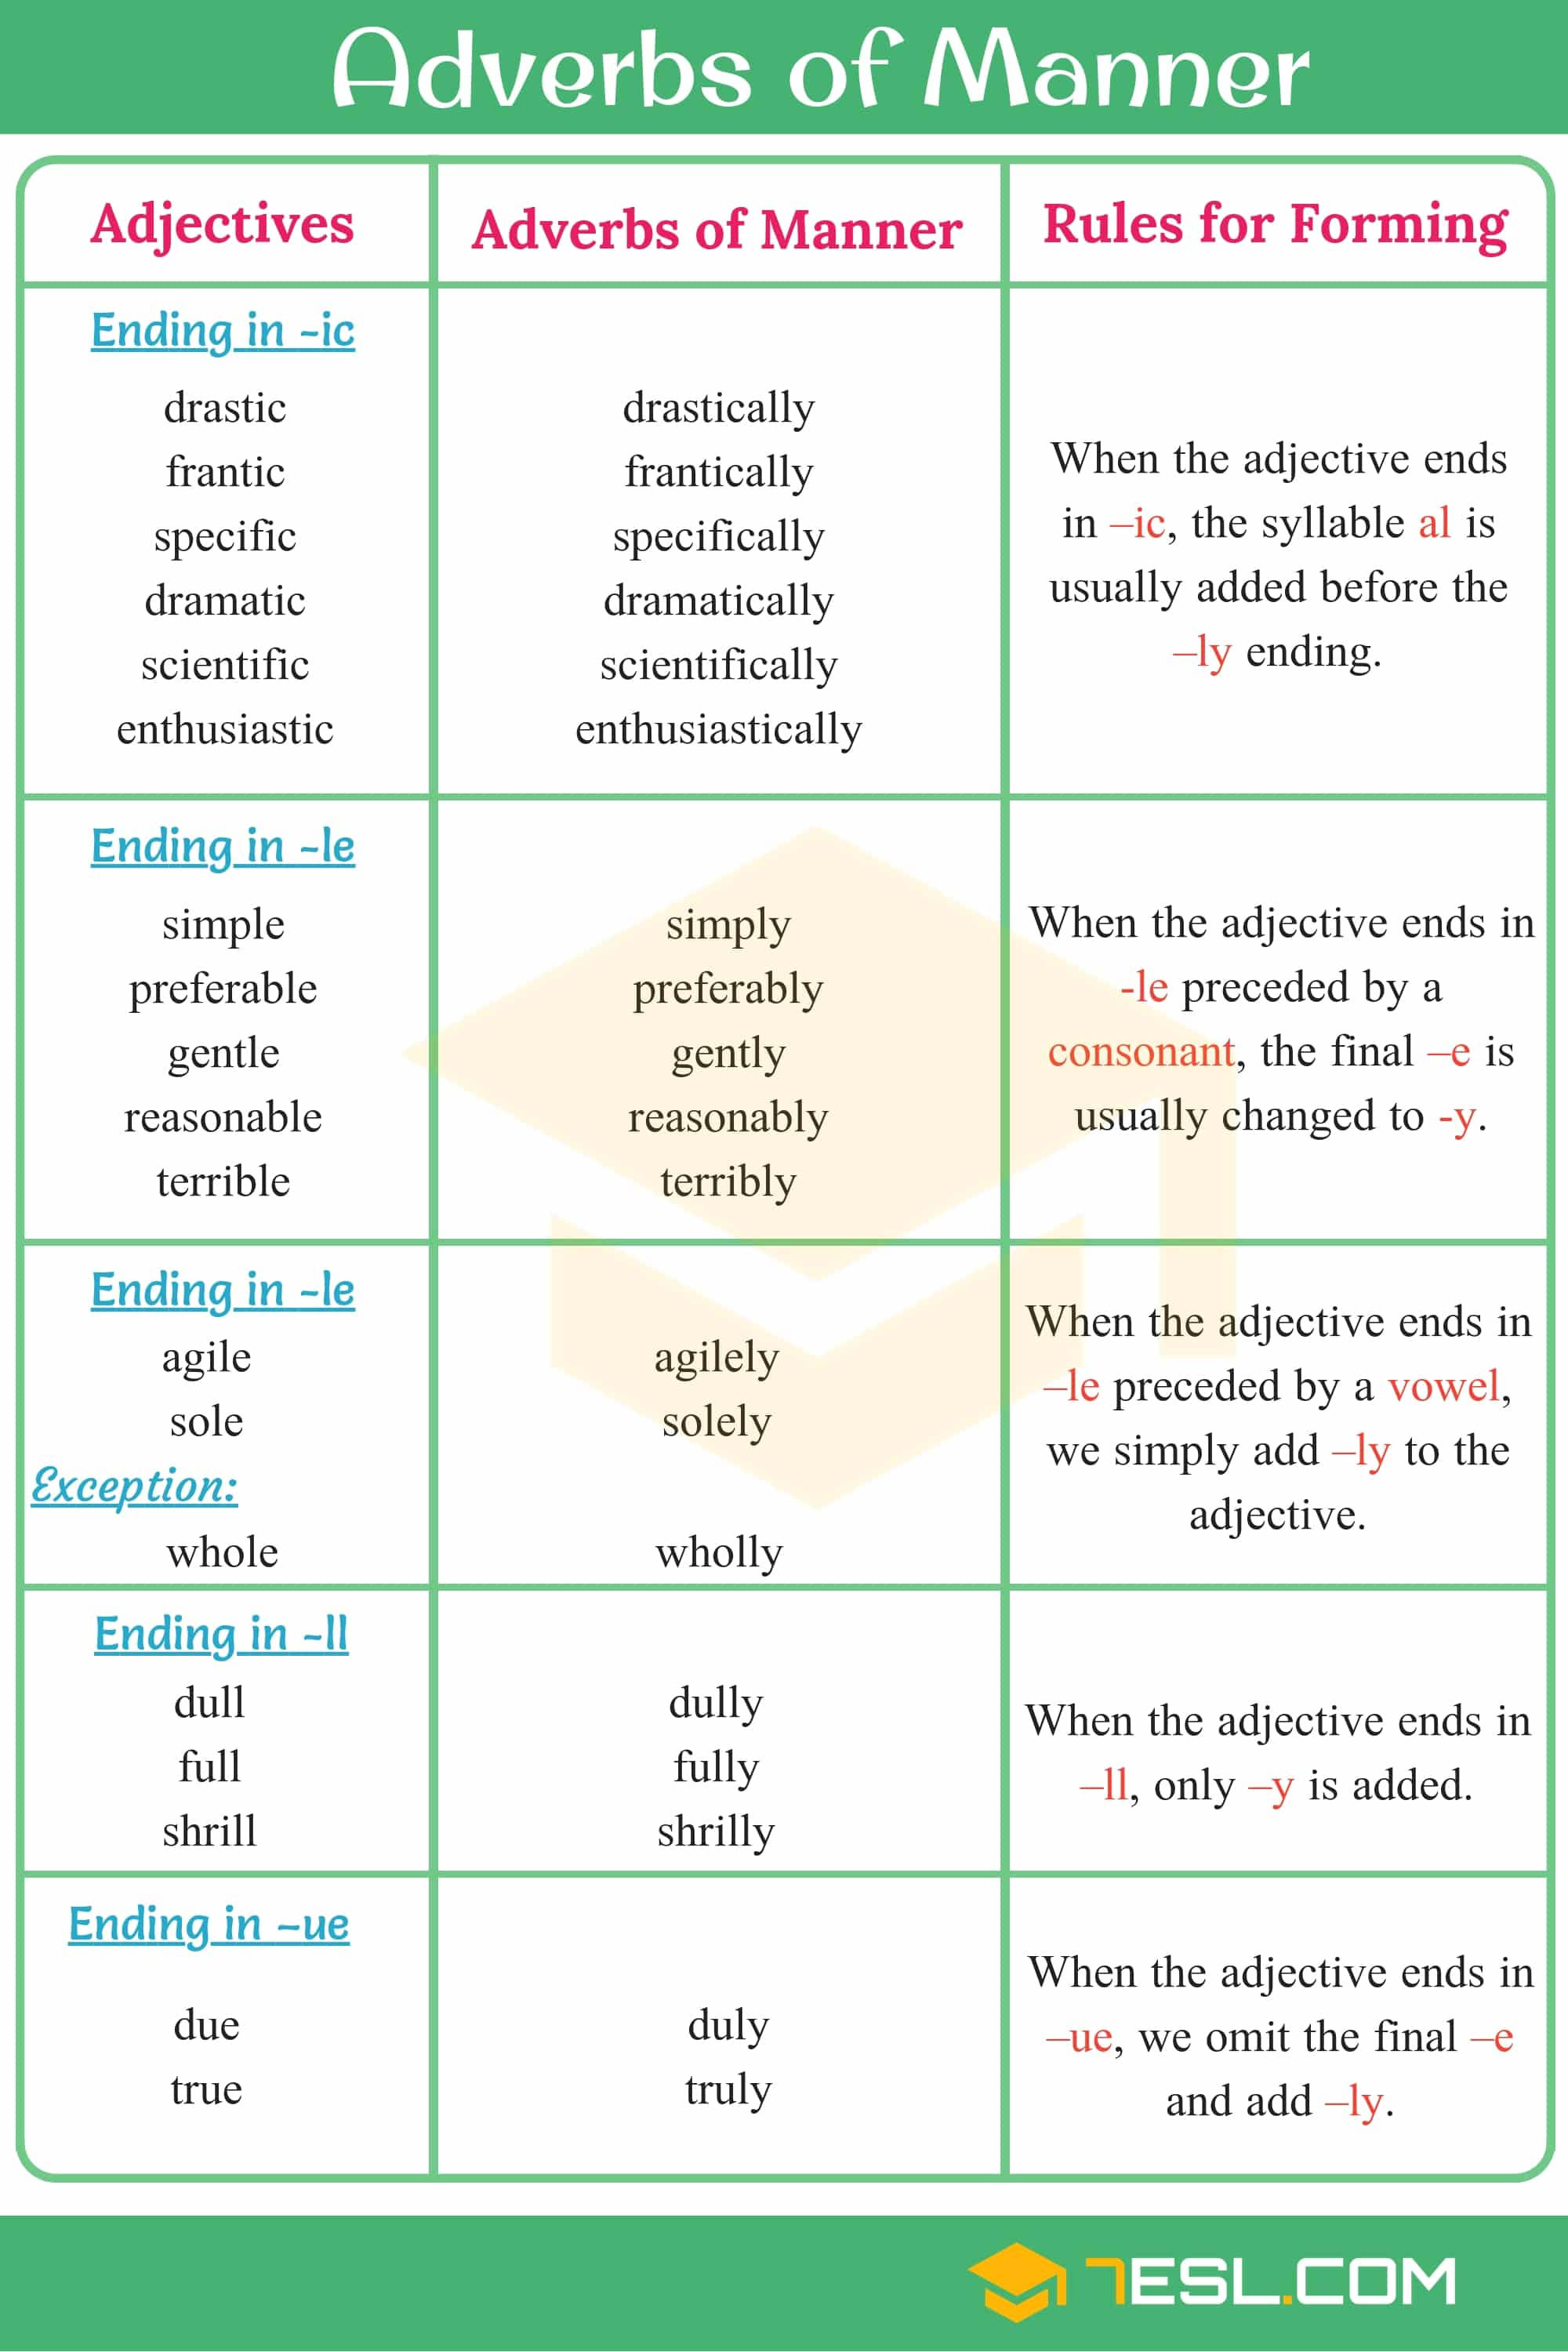 Adverbs of Manner: Useful Rules, List & Examples 1